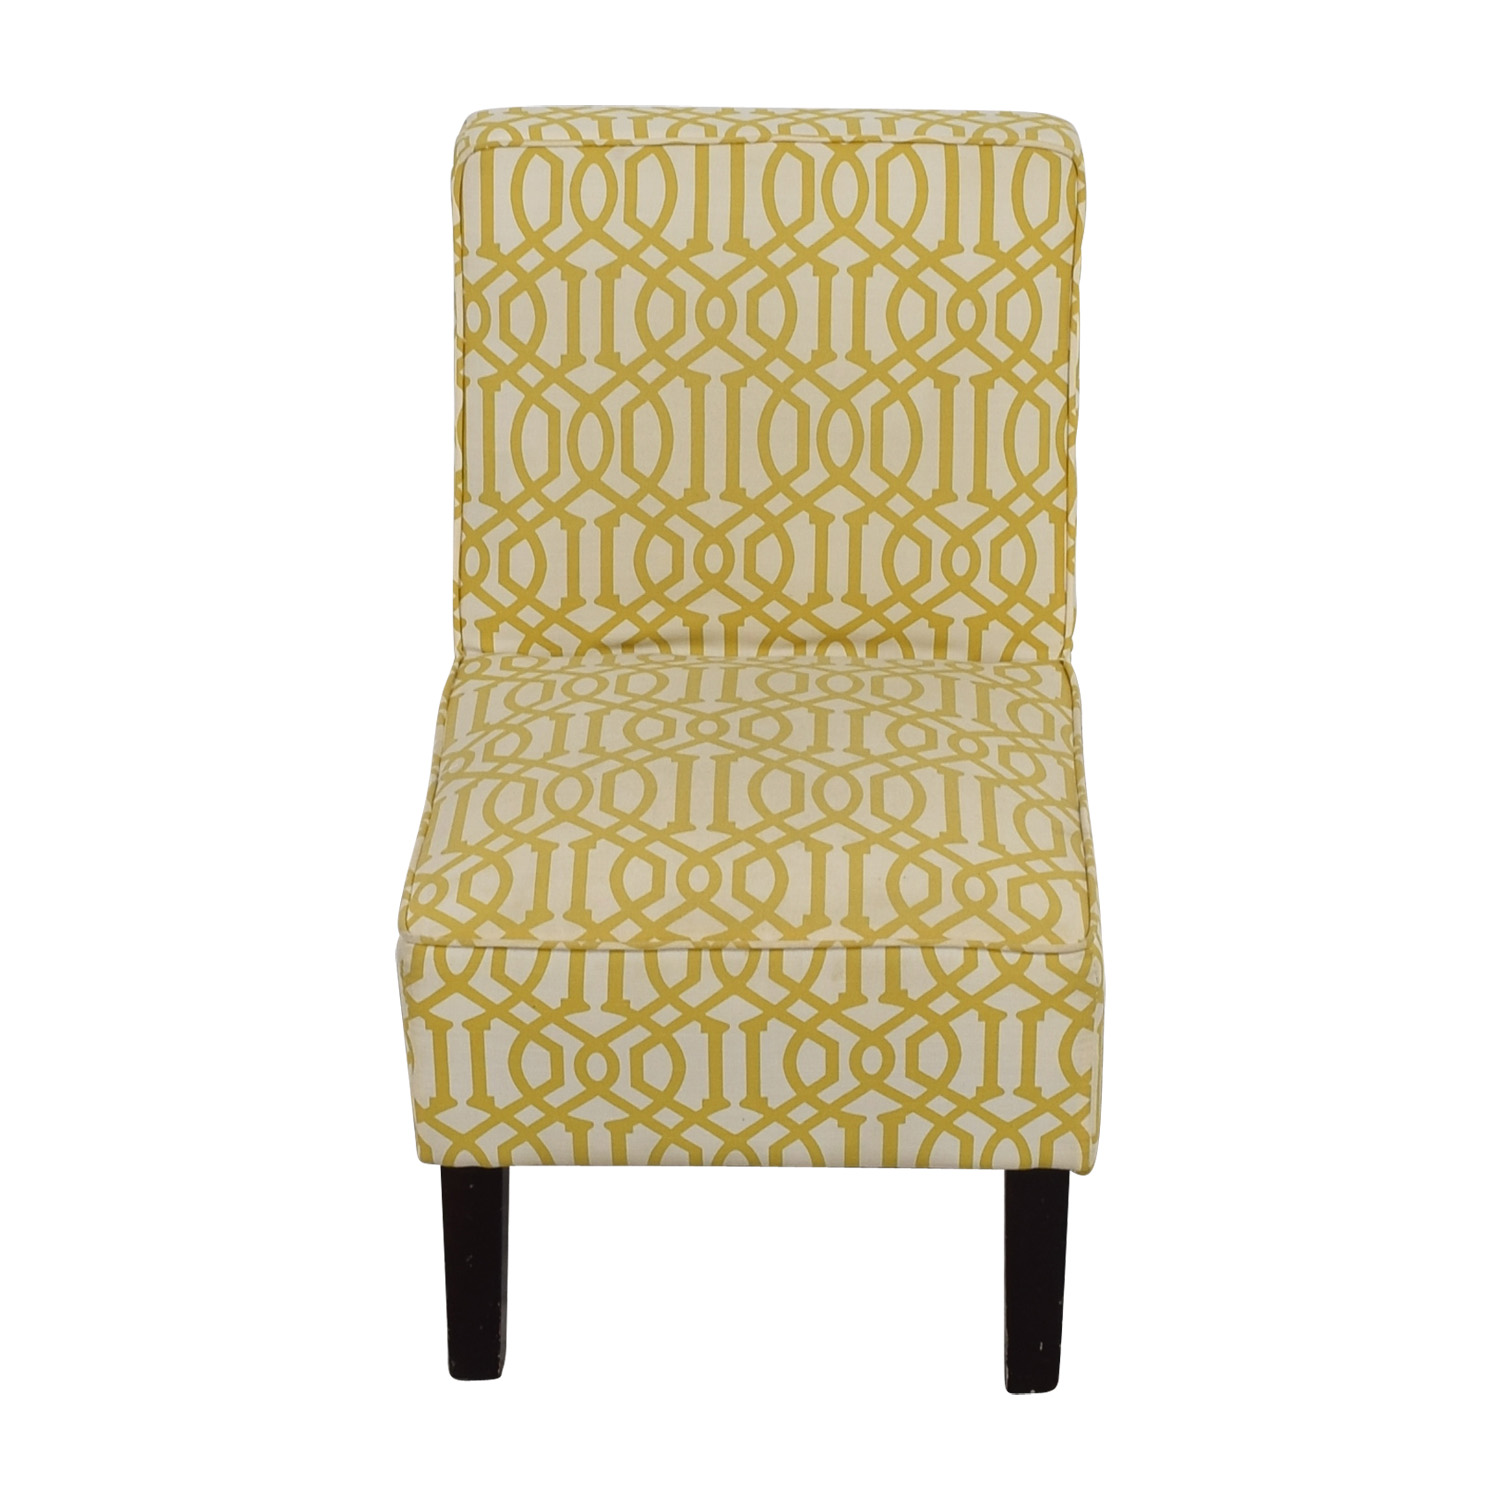 Yellow and White Accent Chair used